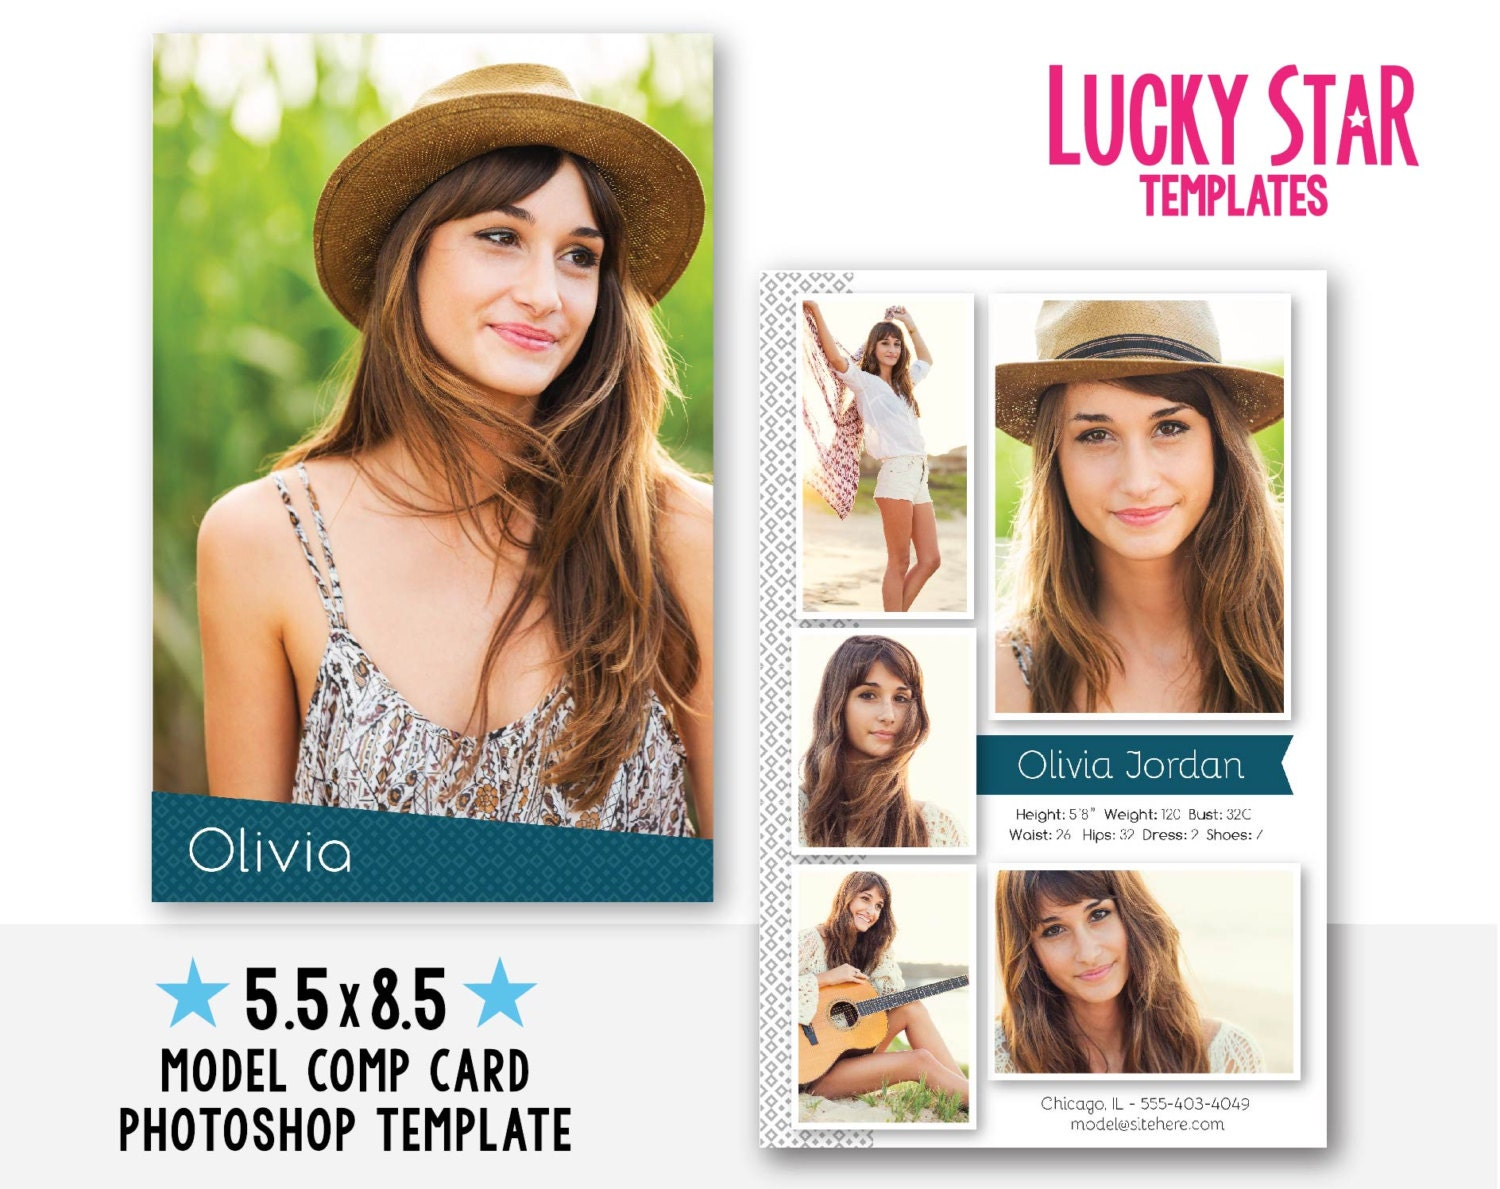 free comp card template - customizable model comp card fresh face instant download